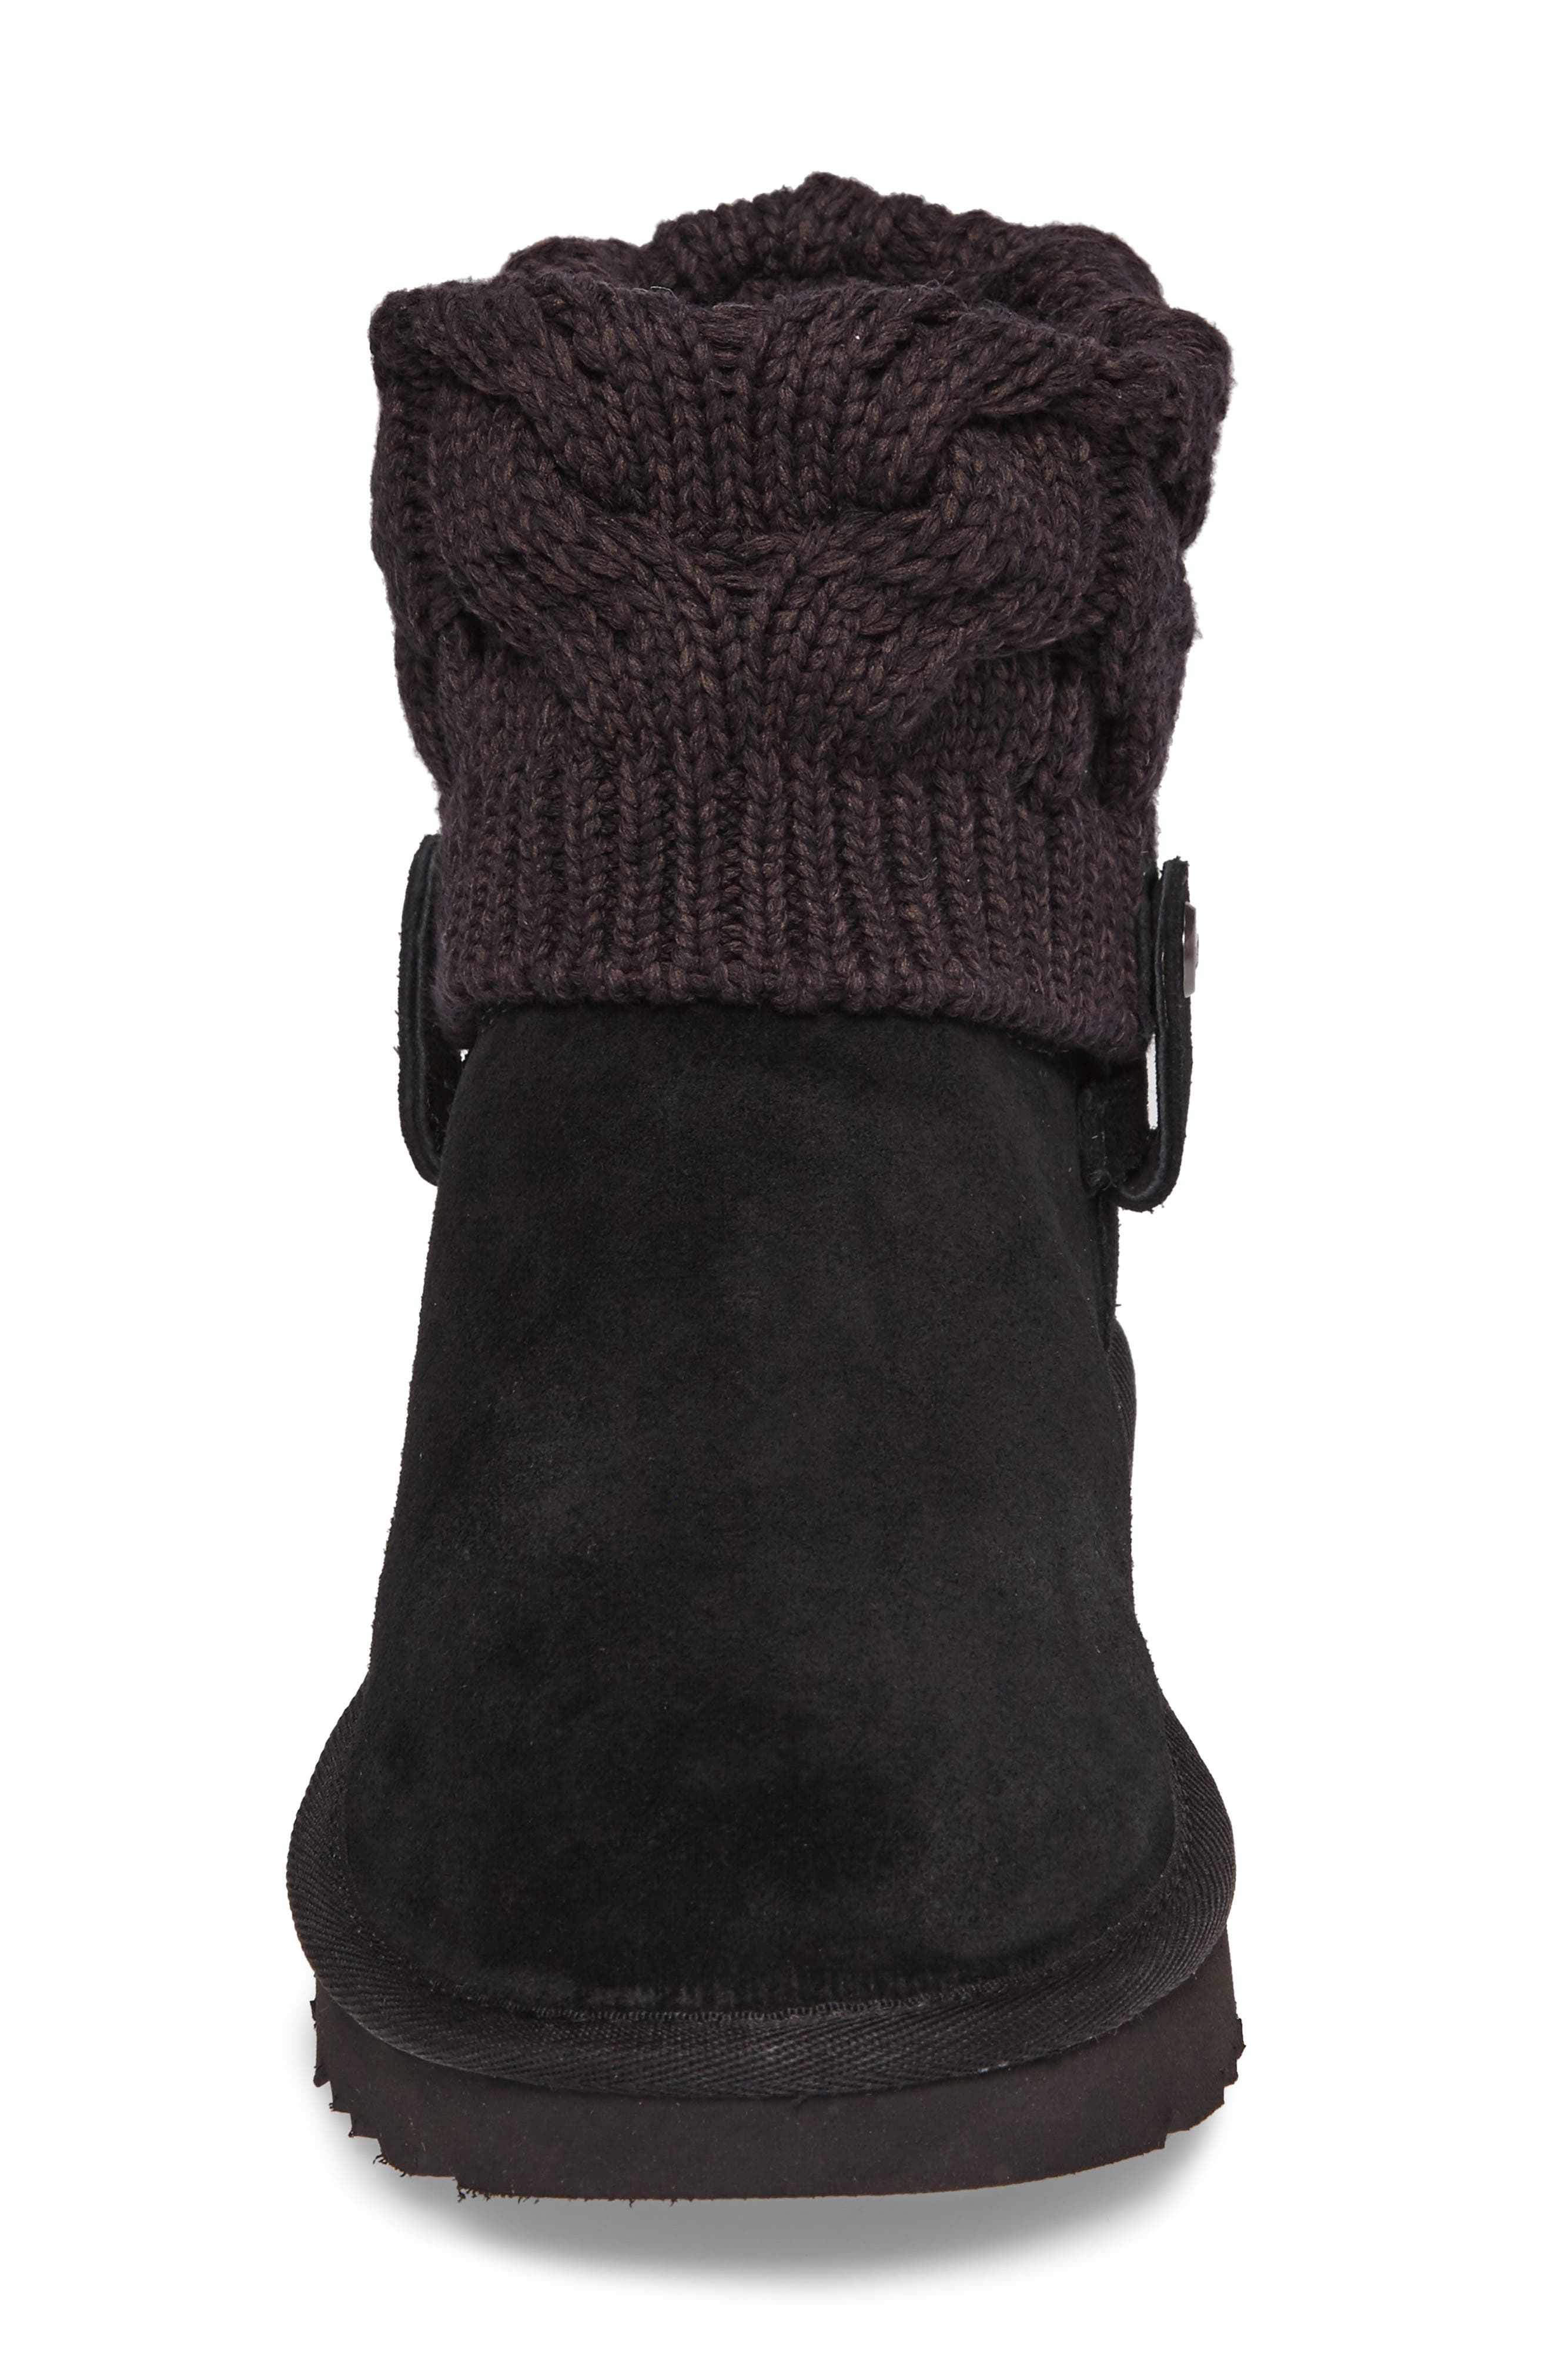 Saela Knit Cuff Boot,                             Alternate thumbnail 4, color,                             001